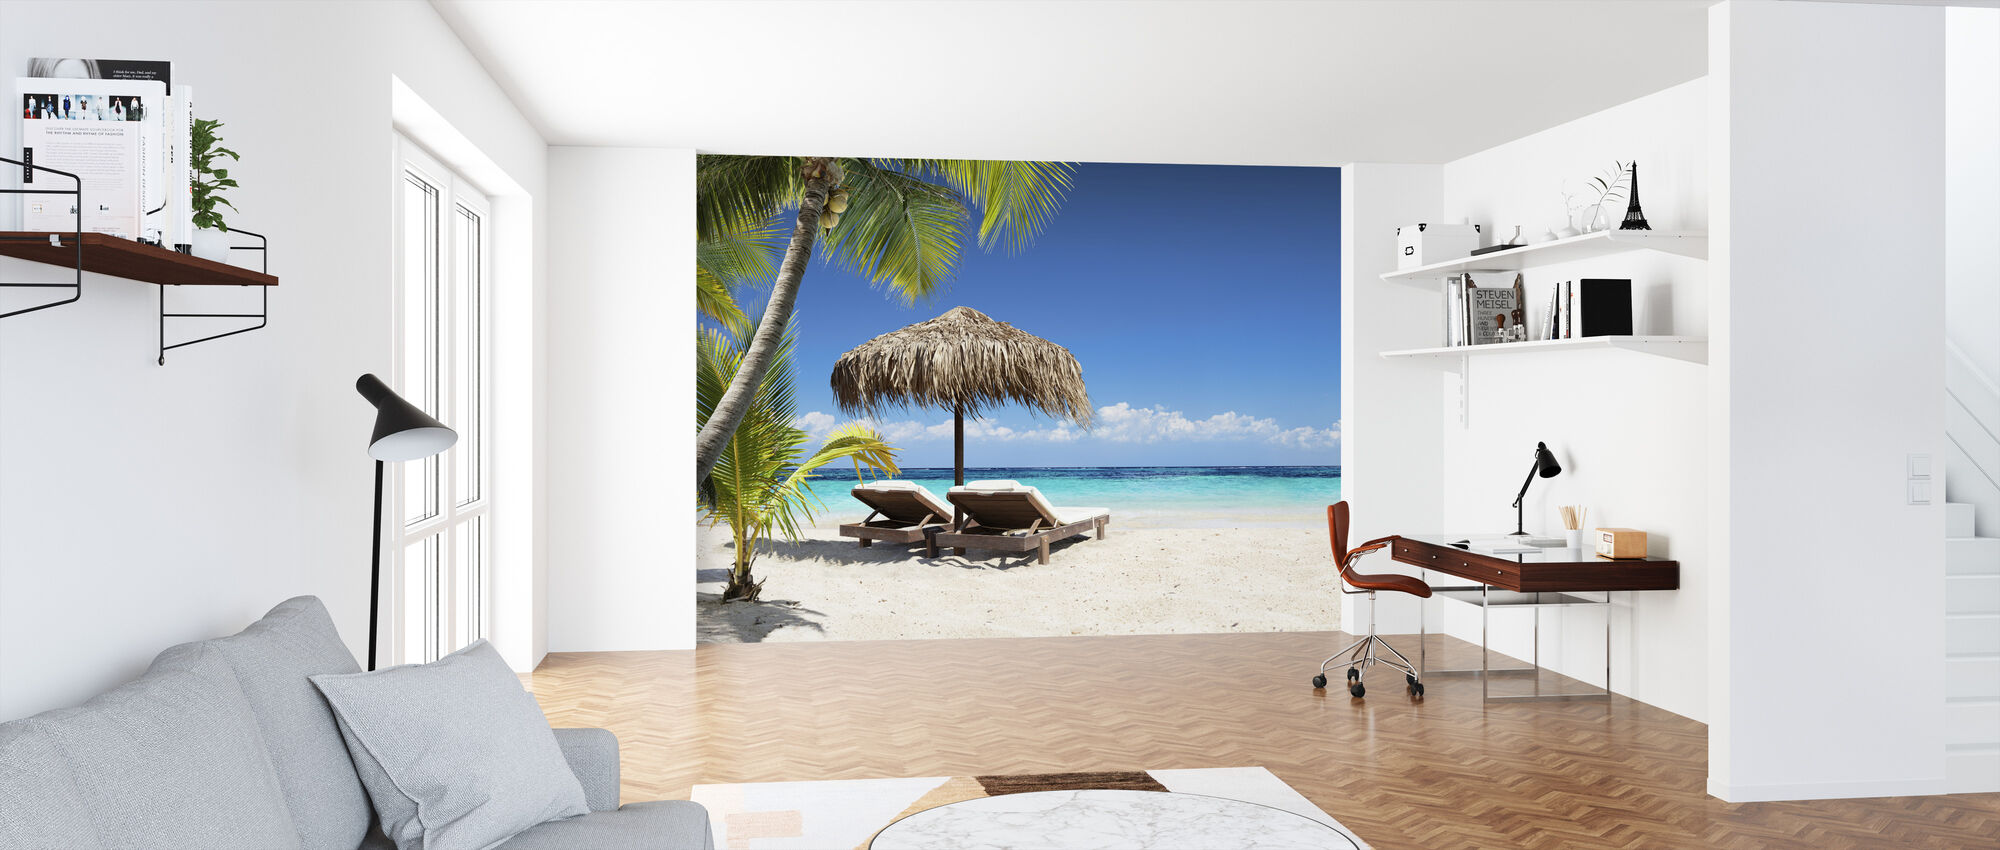 Coral Beach - Wallpaper - Office